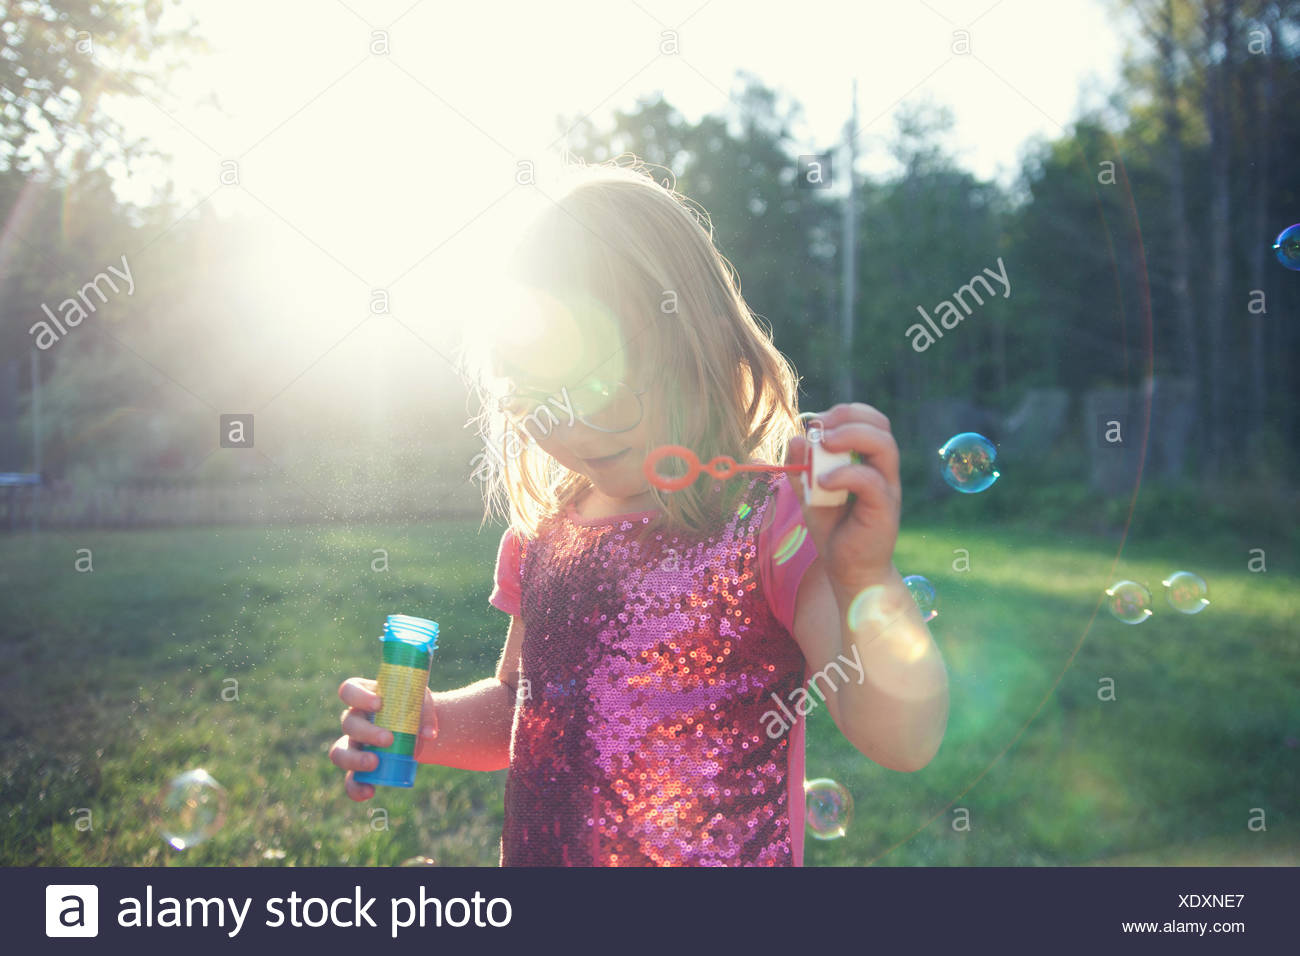 Girl blowing bubbles in garden - Stock Image